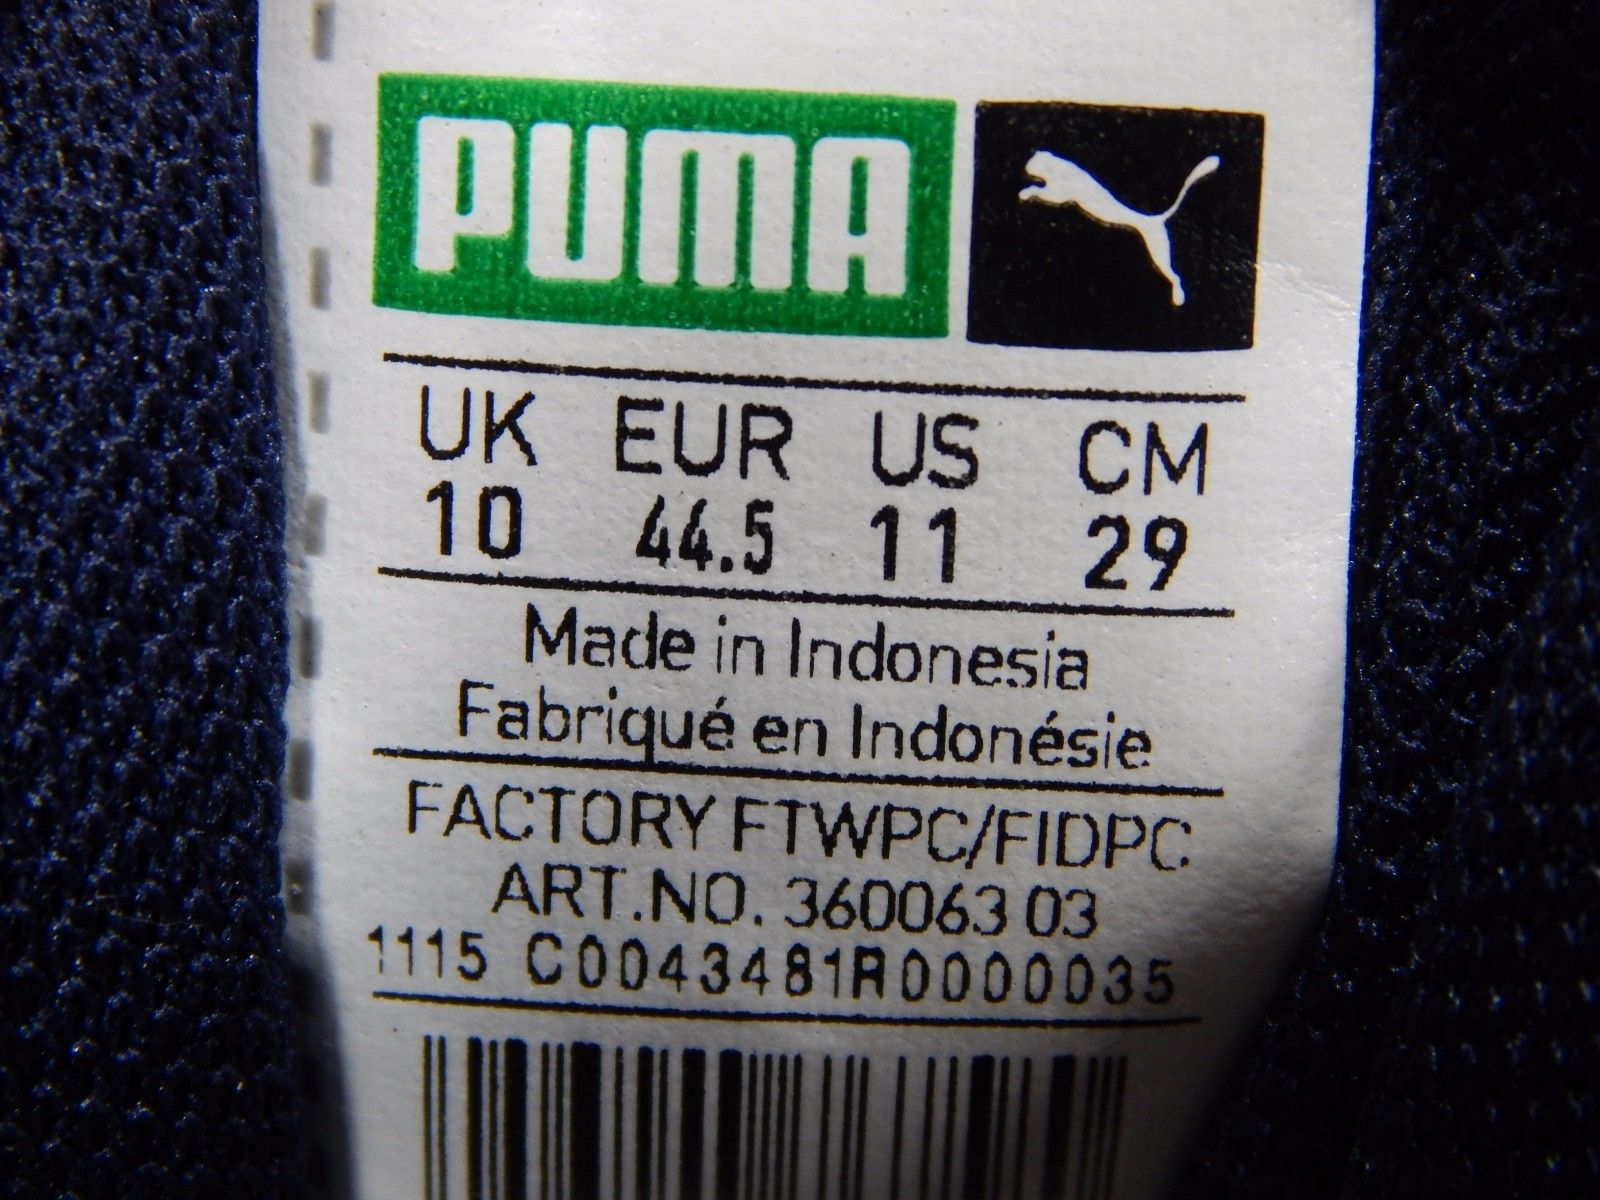 Puma 698 Ignite Men's Athletic Running Shoes Size US 11 M (D) EU 44.5 White Blue